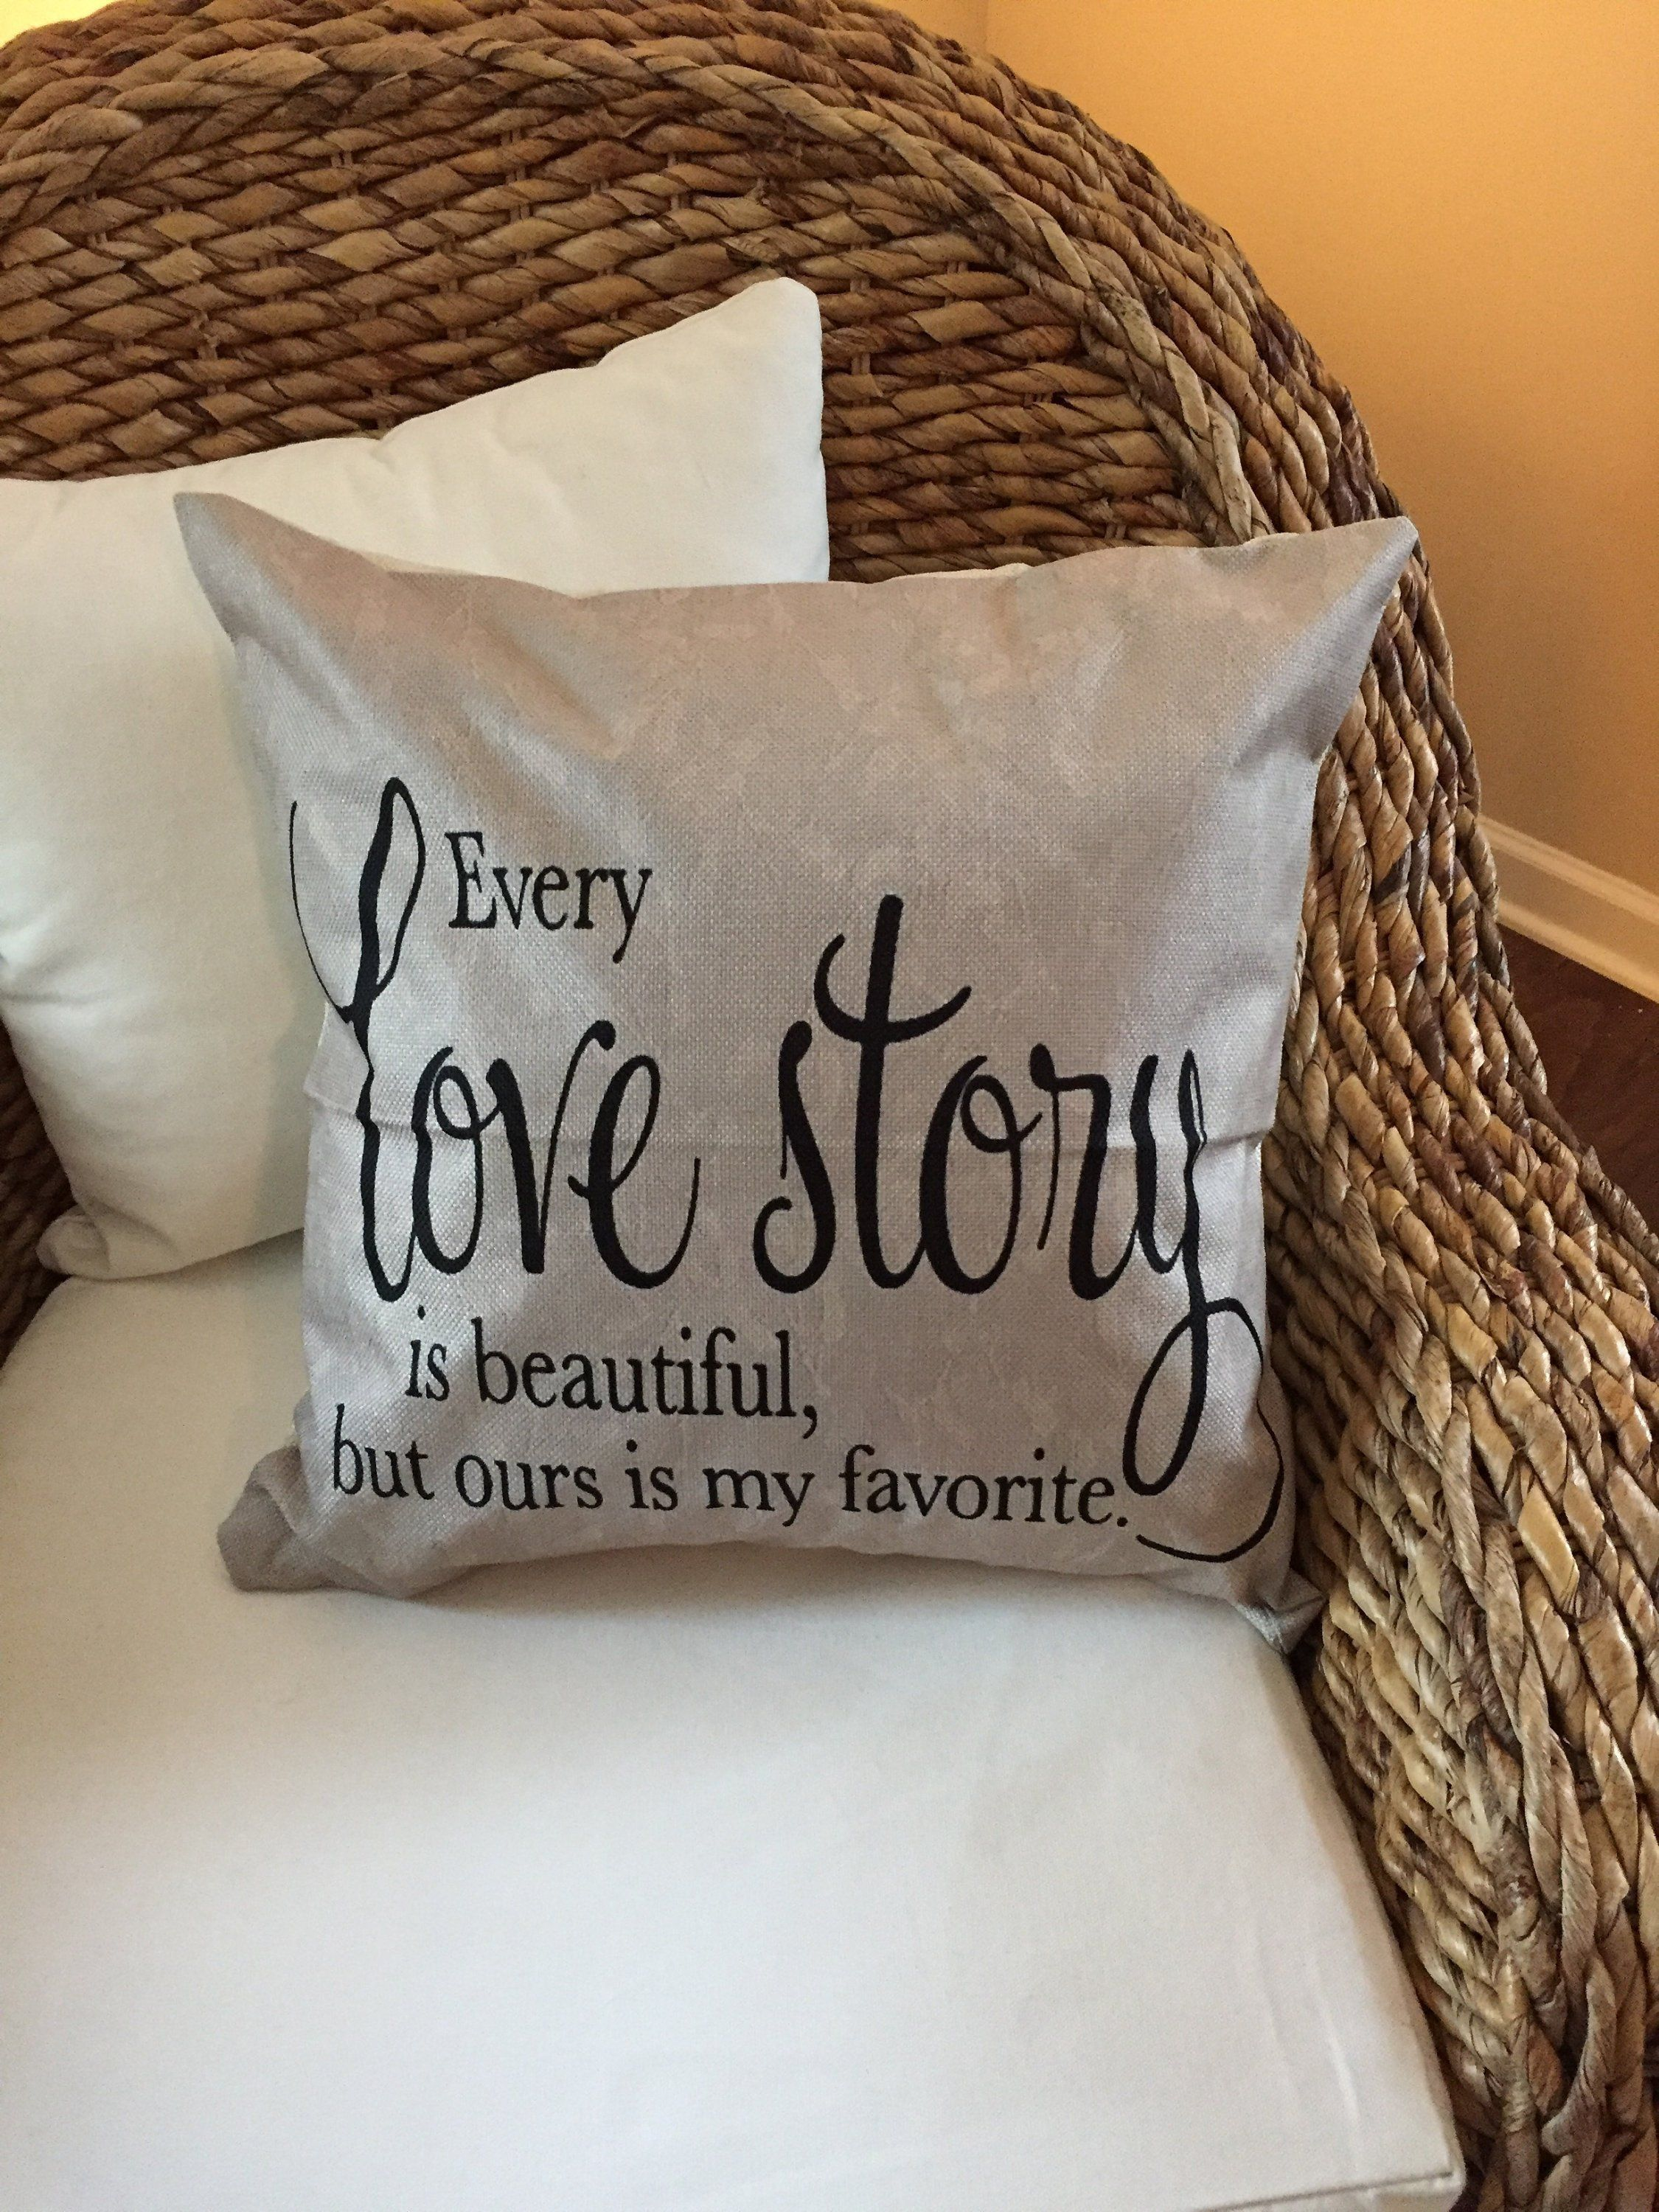 Every Love Story Is Beautiful But Ours My Favorite Pillow Cover Farmhouse Throw Decor By Upcycledwooddesignus On